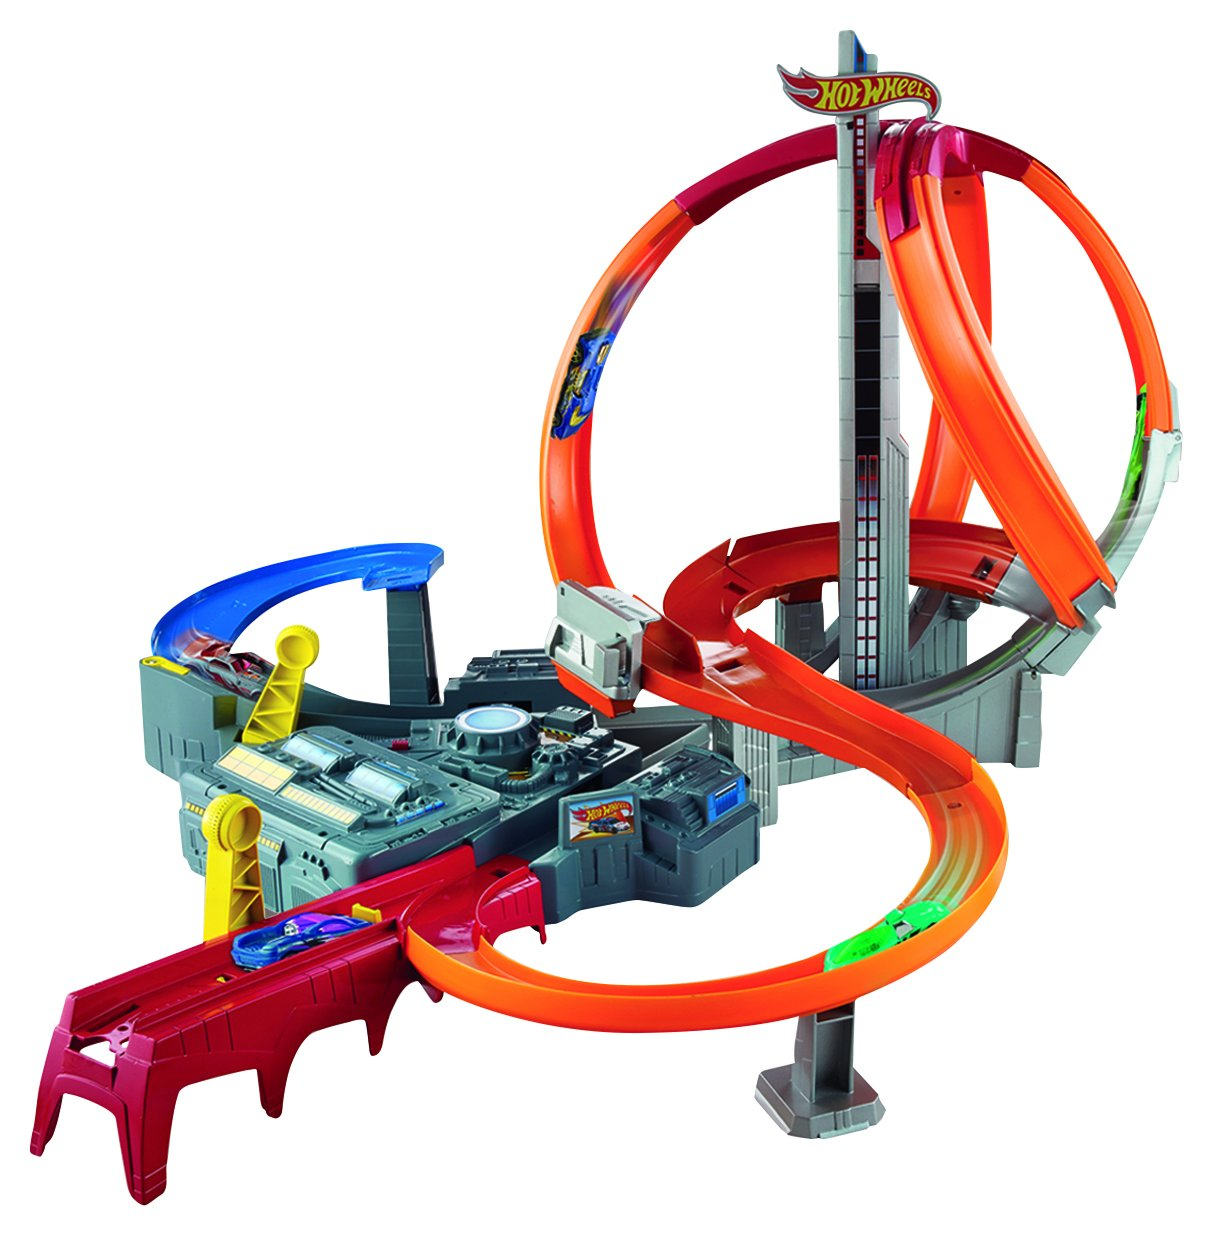 Hot Wheels Spin Storm Playset [Amazon Exclusive]